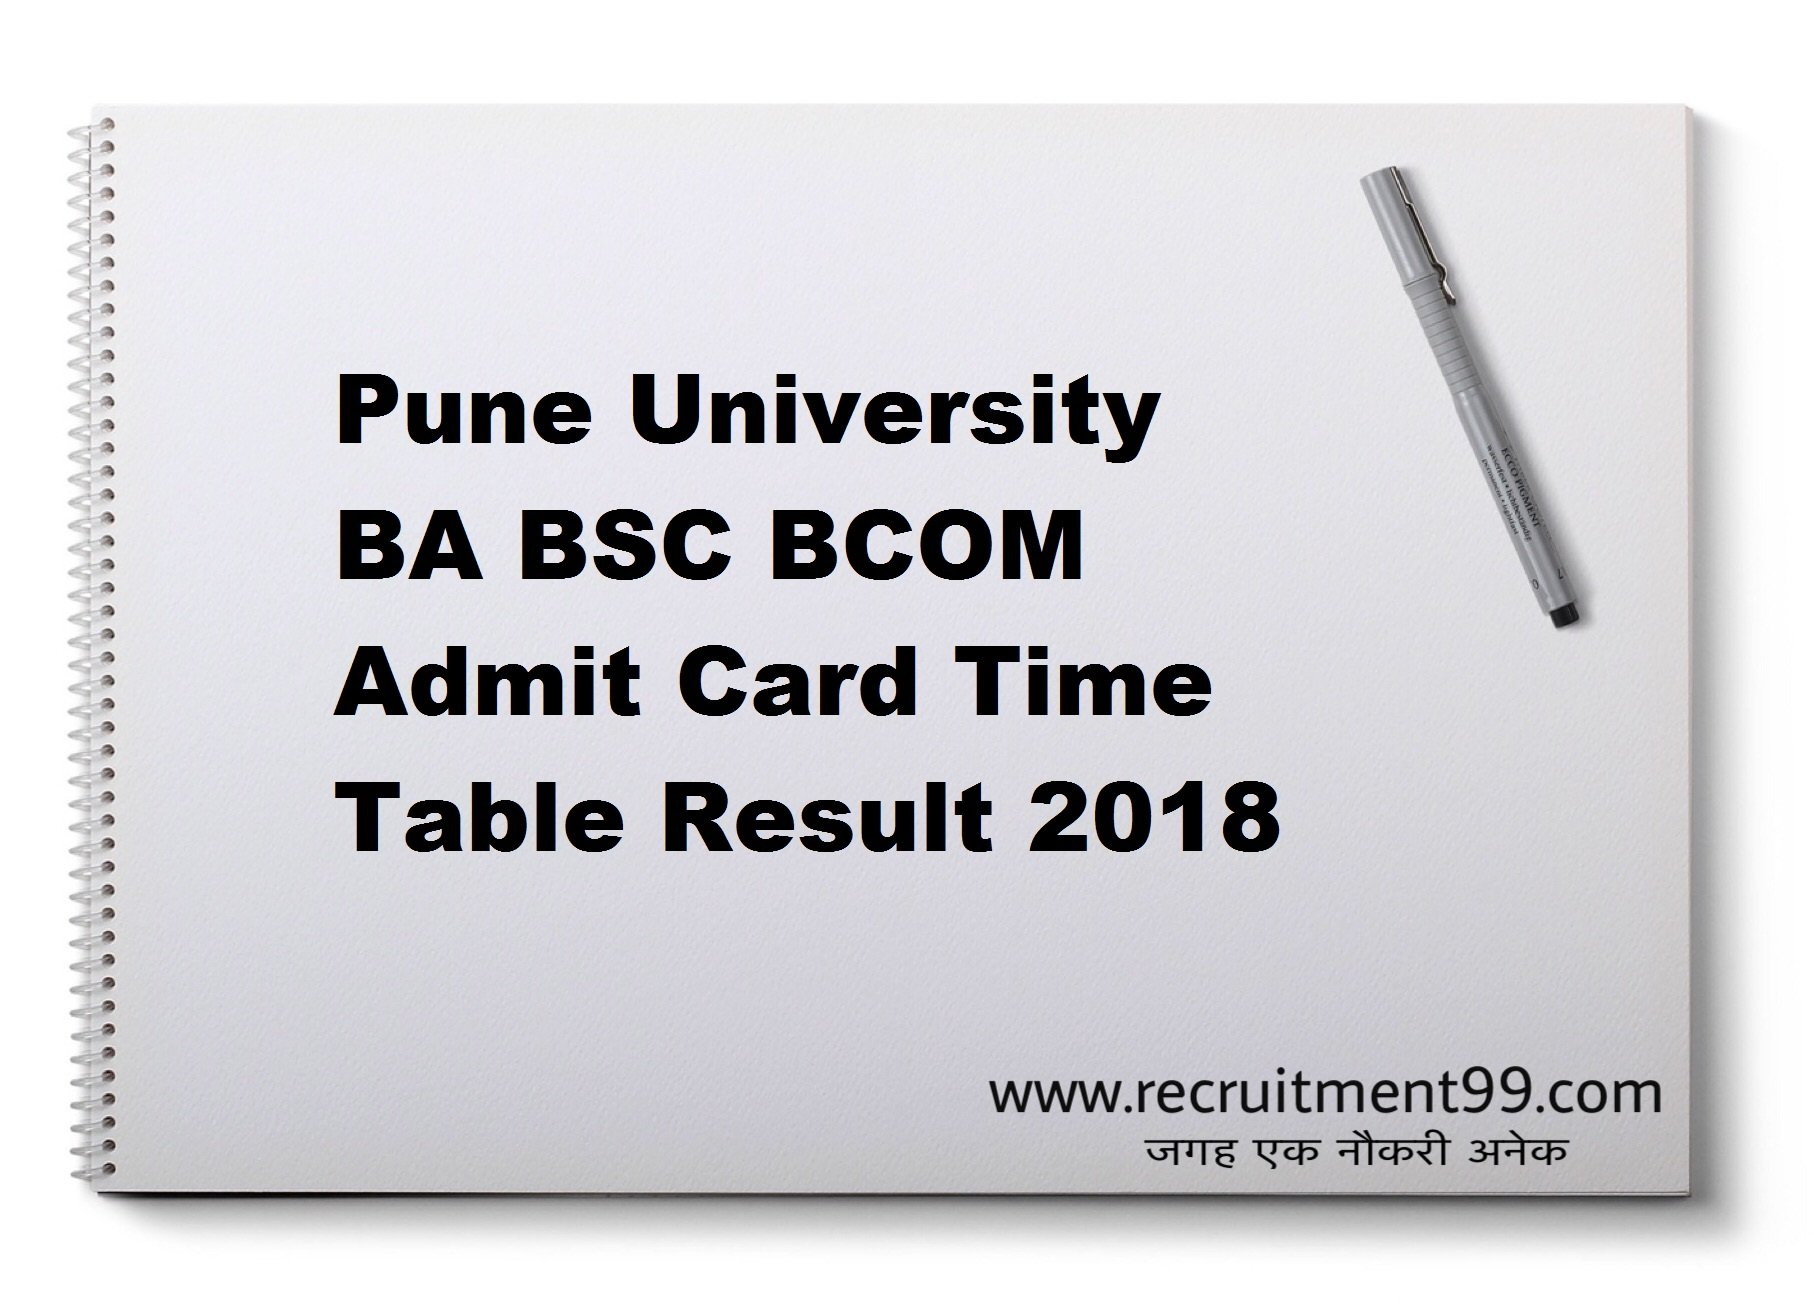 Pune University BA BSC BCOM Admit Card Time Table Result 2018